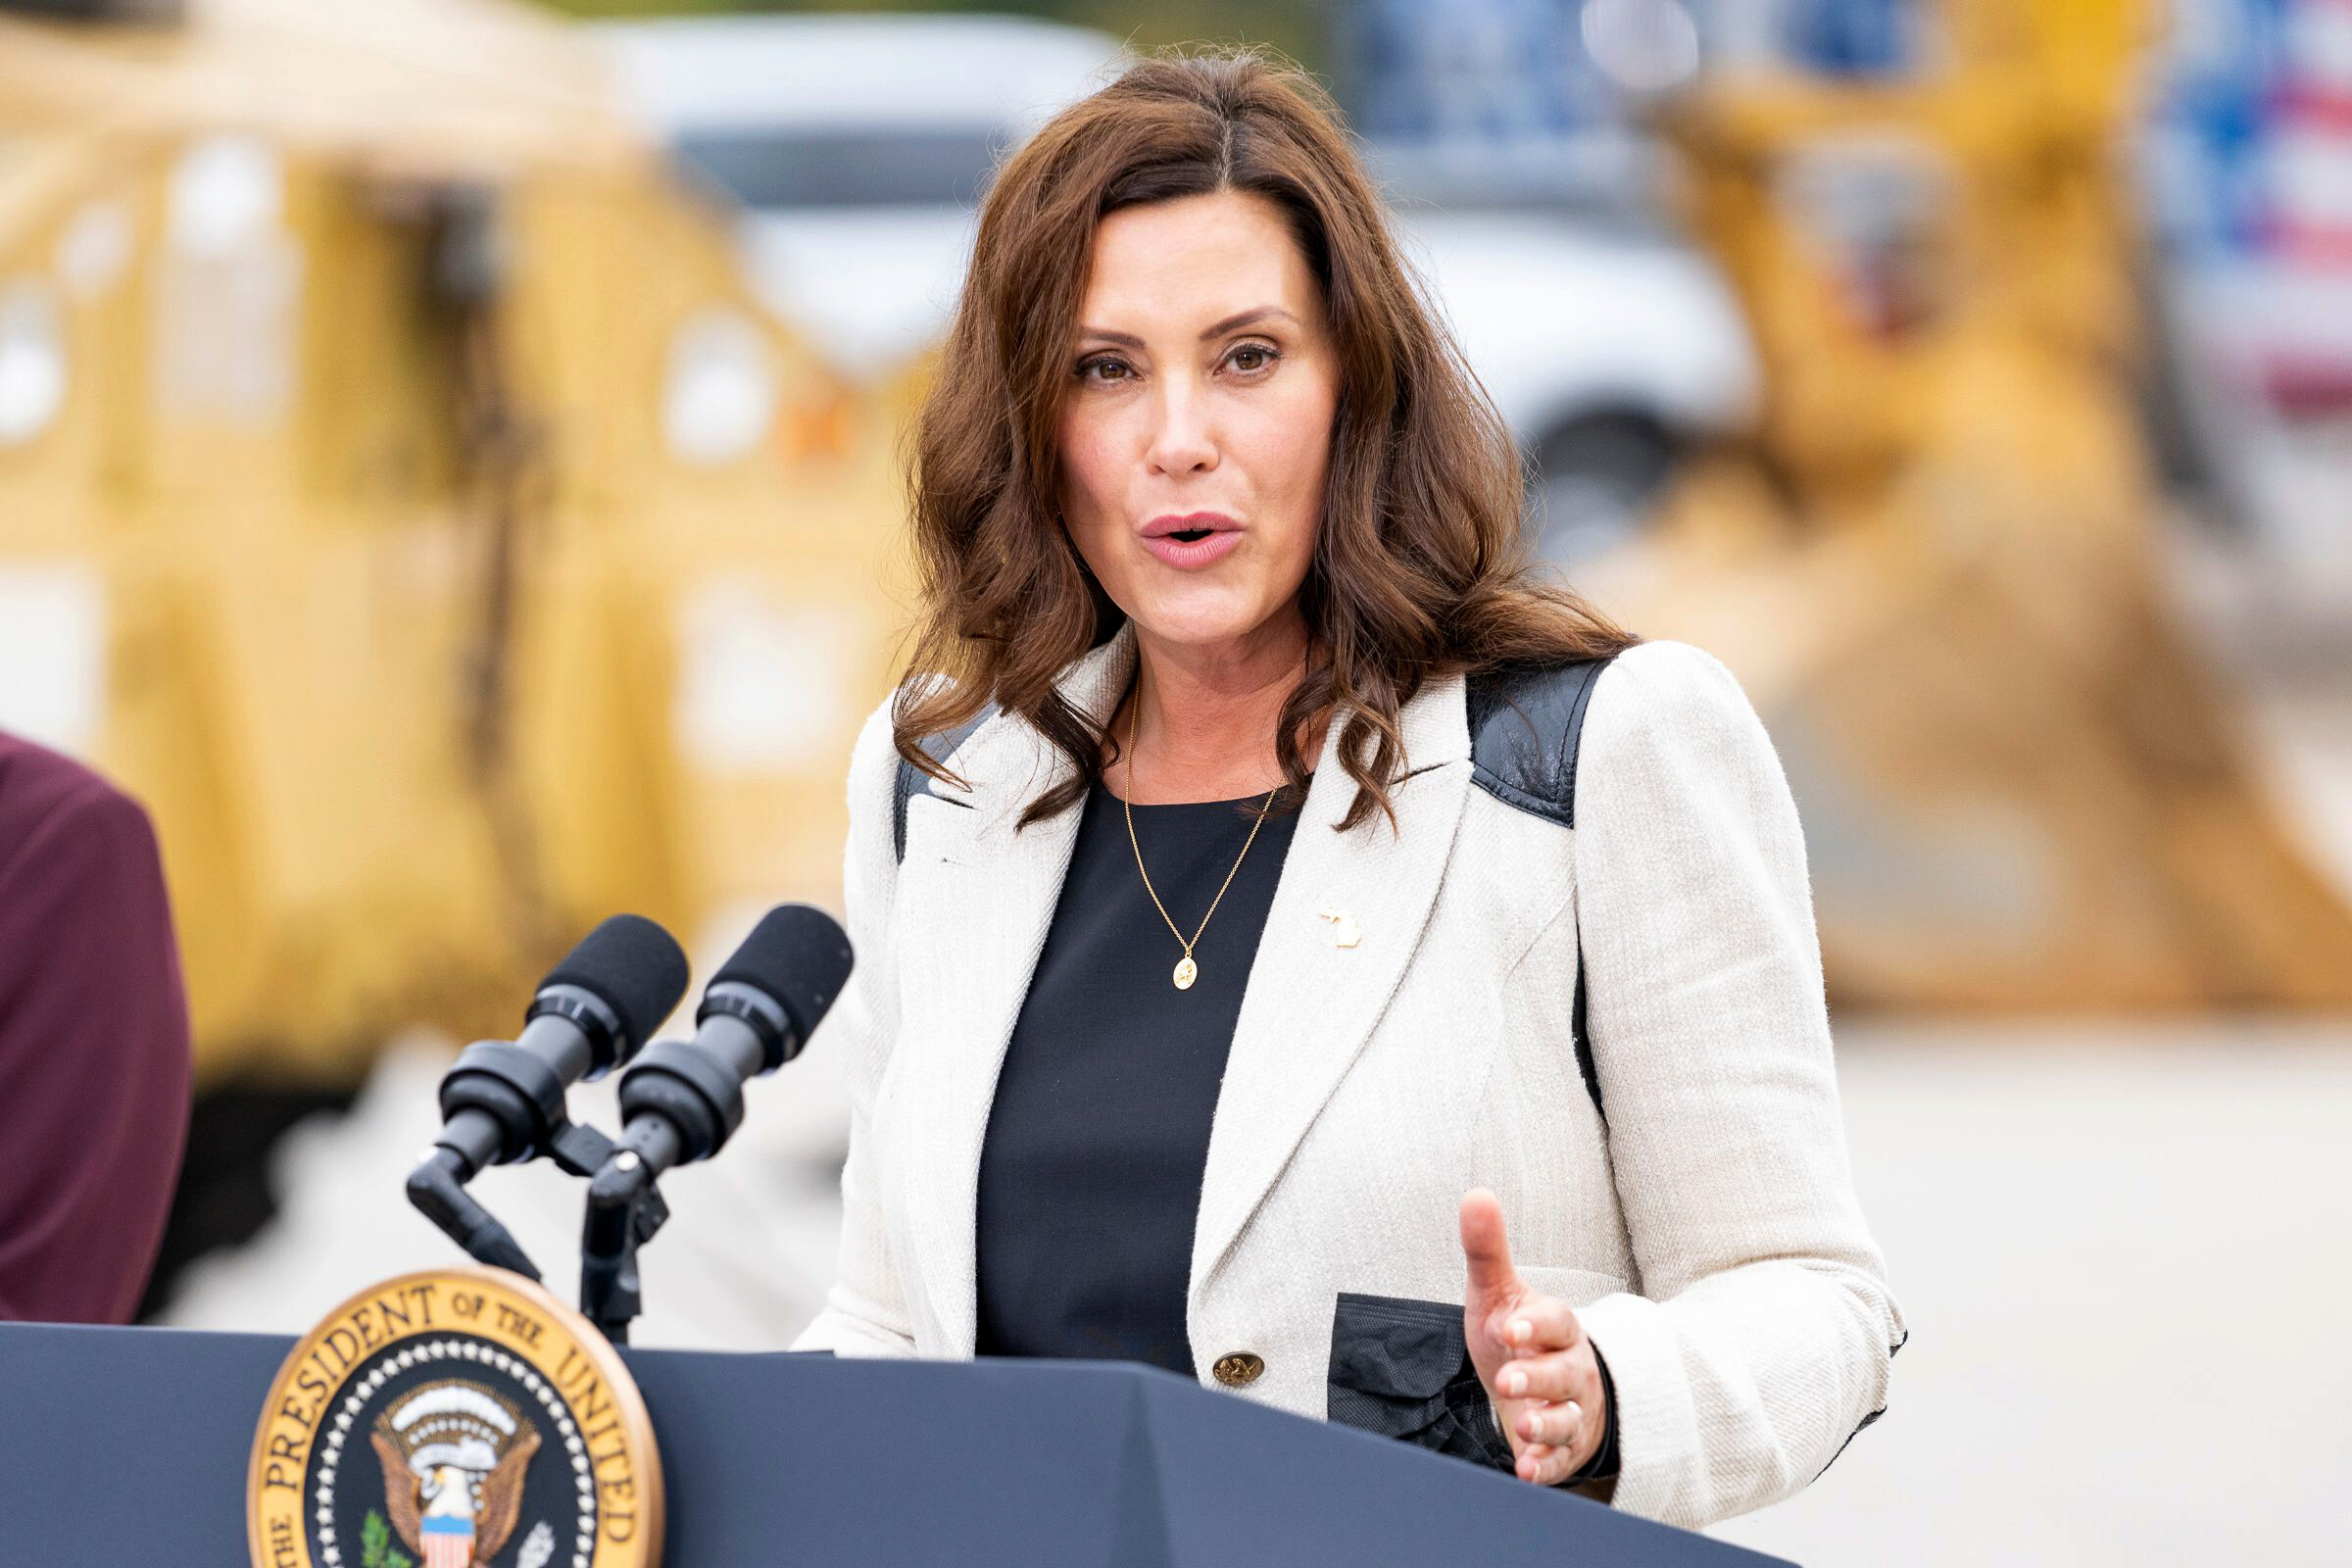 <i>Dominick Sokotoff/Shutterstock</i><br/>Michigan Gov. Gretchen Whitmer signed an executive directive on October 14 designed to help residents of Benton Harbor get access to safe drinking water amid concerns about unsafe levels of lead in its water system.